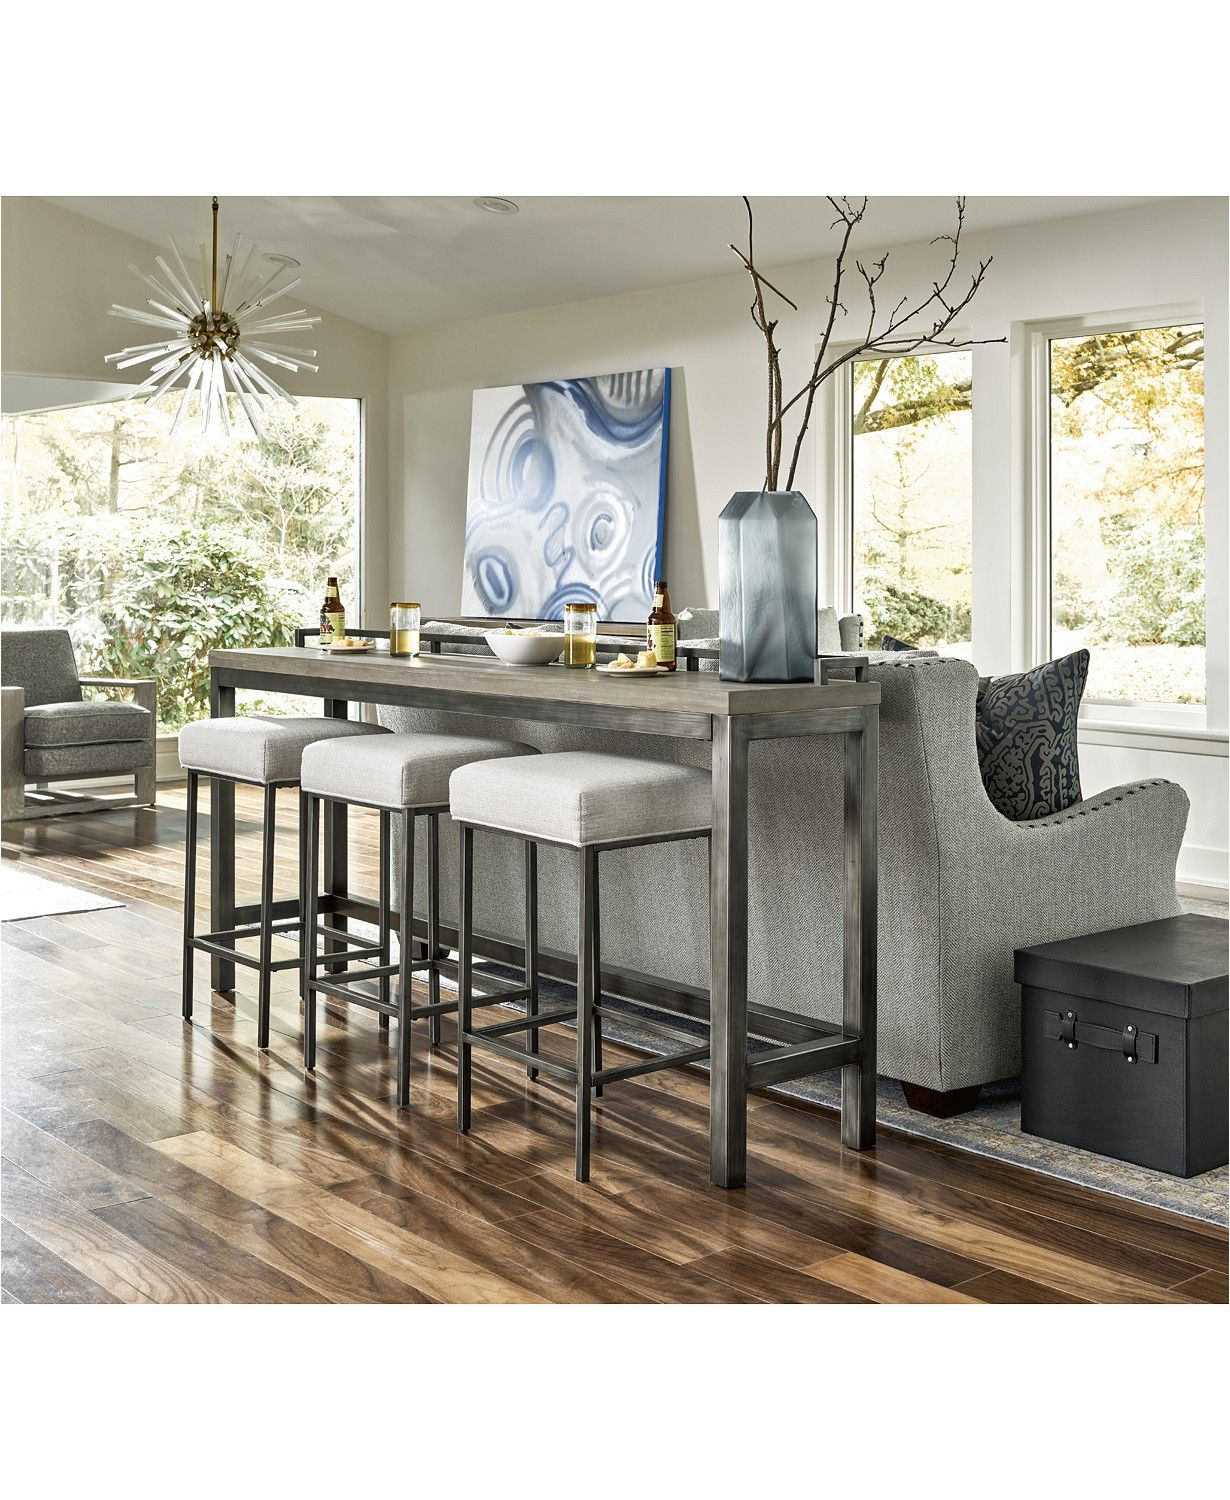 Furniture Channing 4 Pc Table Set Console Table 3 Stools